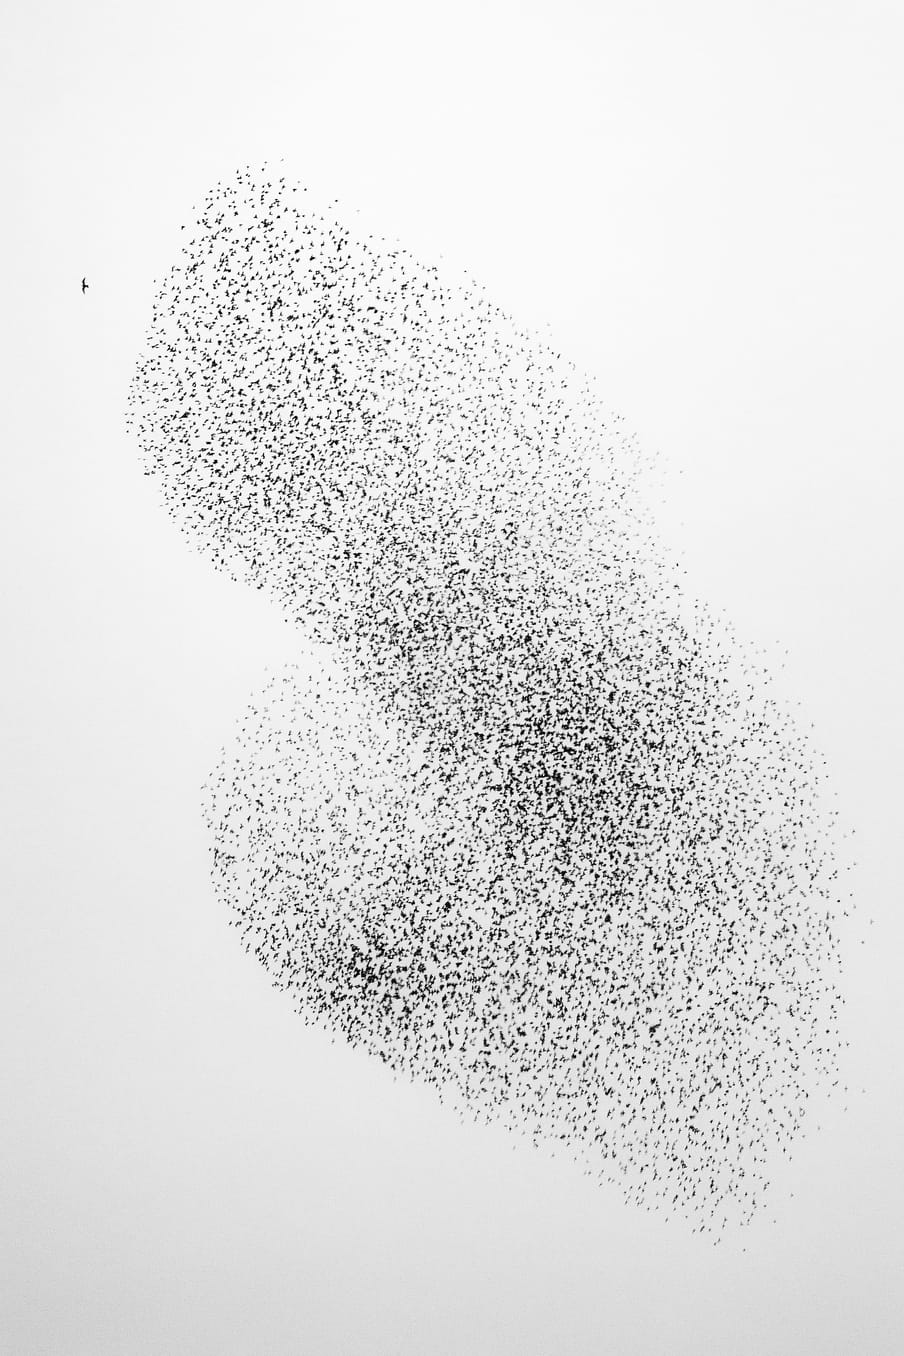 Photo of a flock of birds - against a white background